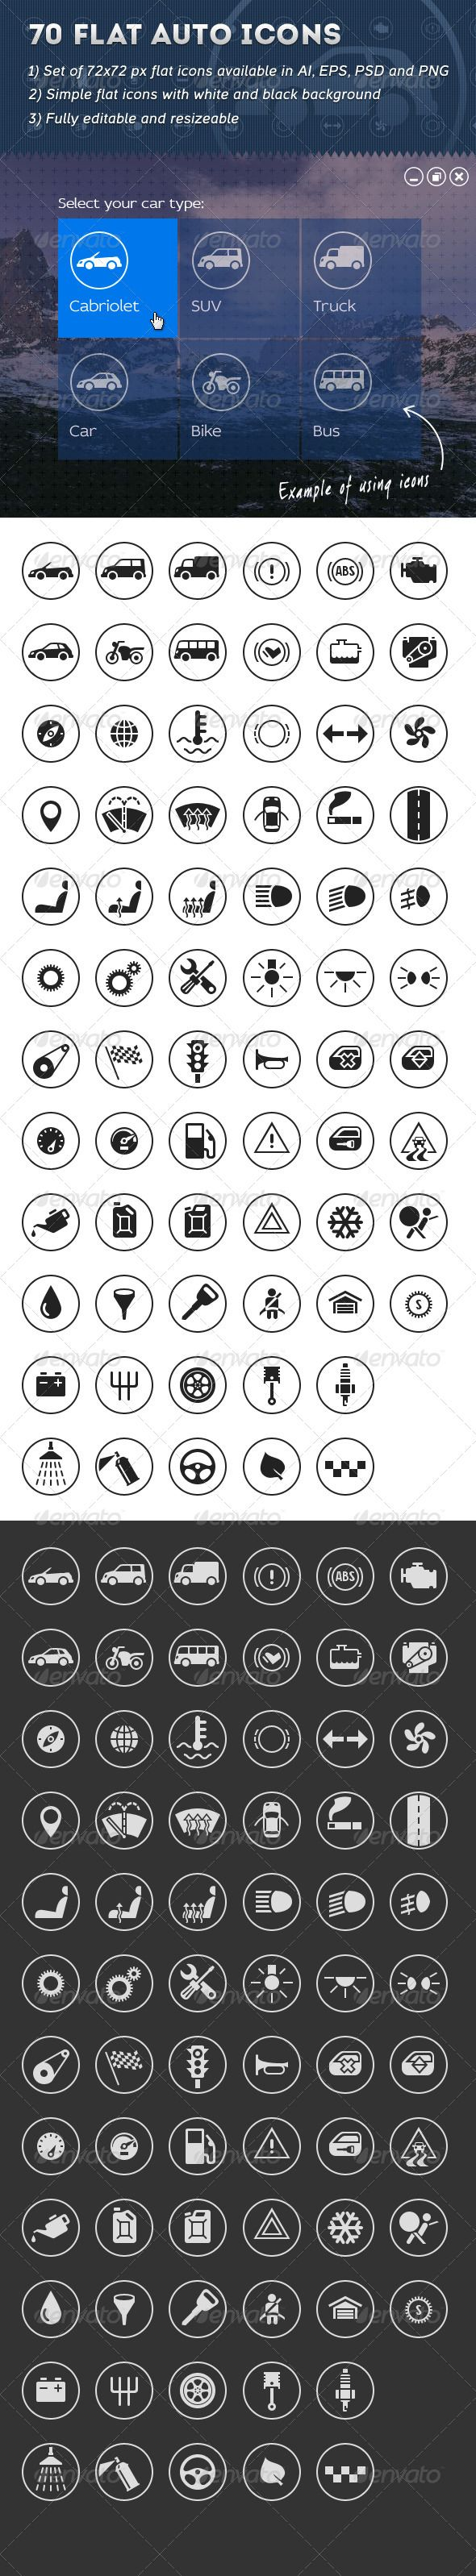 70 Flat Auto Icons — Photoshop PSD #belt #fuel • Available here → https://graphicriver.net/item/70-flat-auto-icons/5378948?ref=pxcr